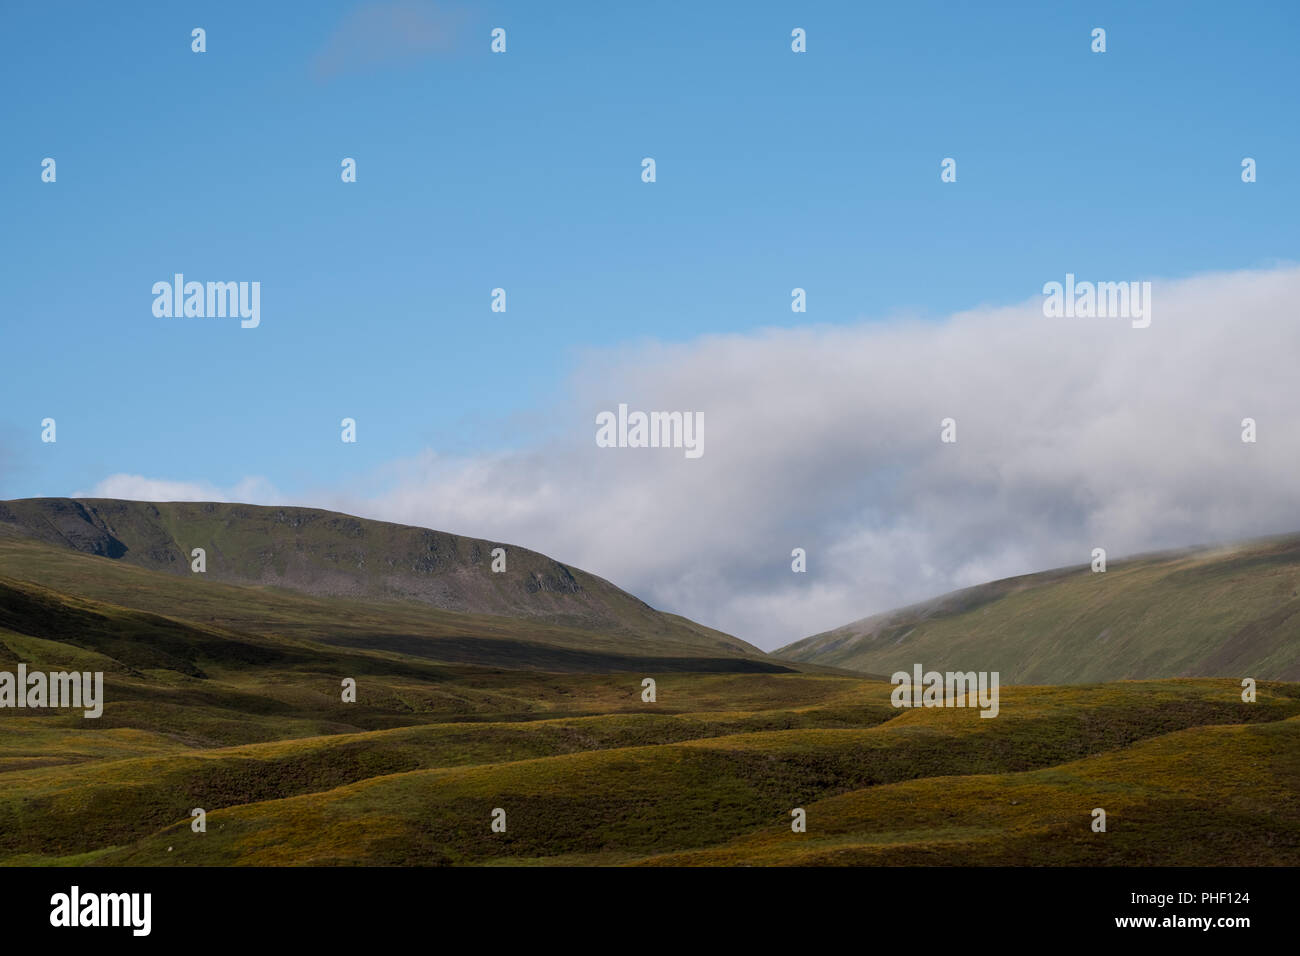 Hills in Scottish Highlands on a clear summer's day, with low lying cloud. Photographed early in morning near Inverness from Caledonia Sleeper train. - Stock Image